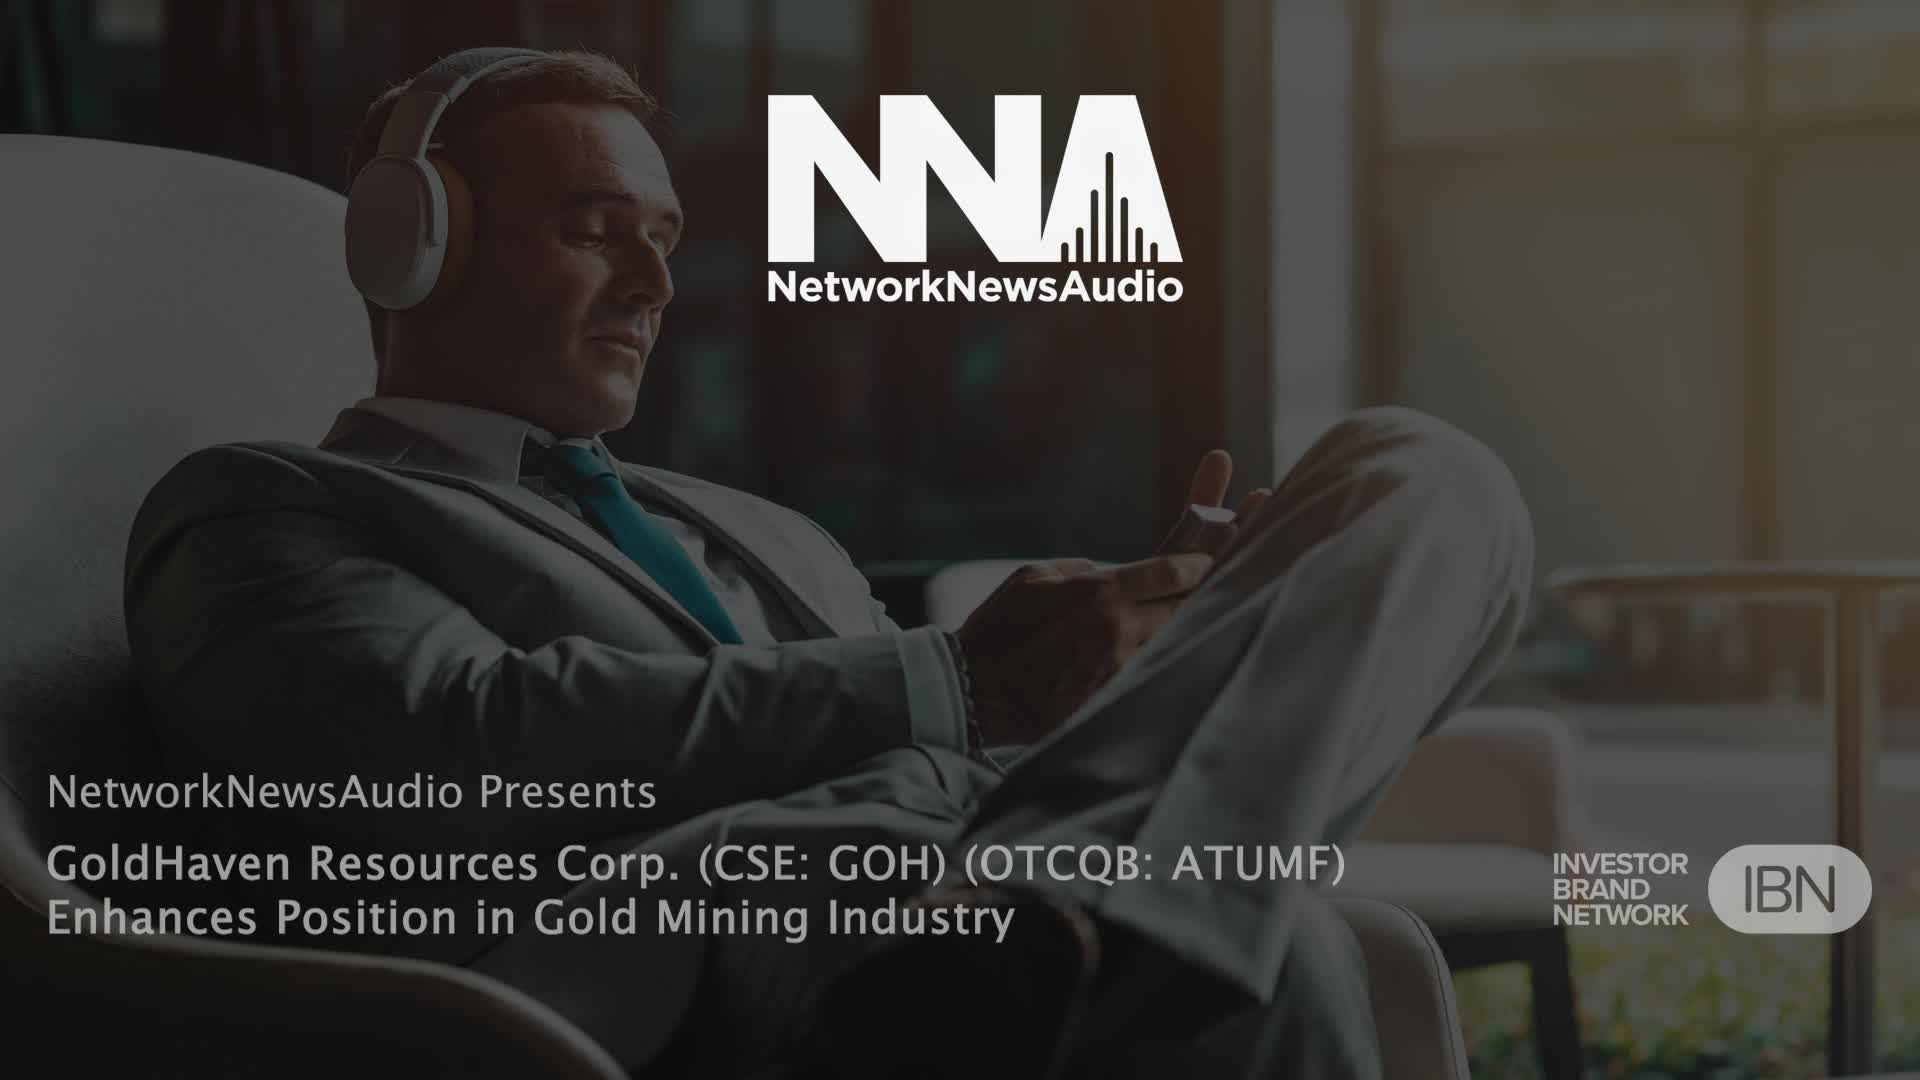 NetworkNewsAudio News-GoldHaven Resources Corp. (CSE: GOH) (OTCQB: ATUMF) Enhances Position in Gold Mining Industry